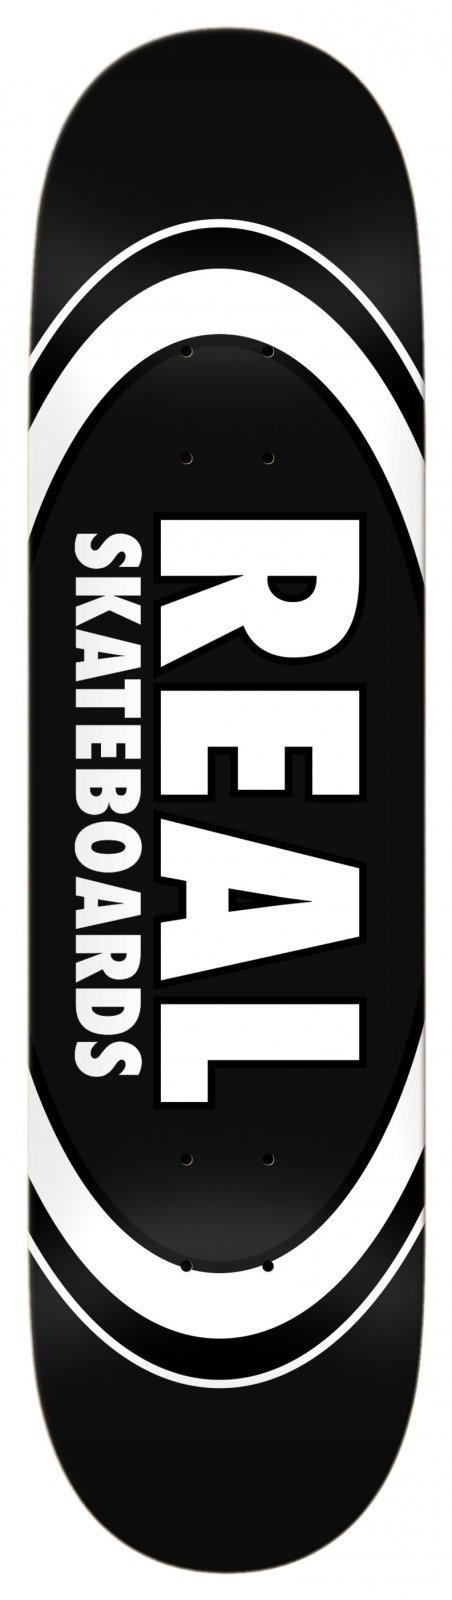 Real Classic Oval 8.25 x 32.0 Skateboard Deck